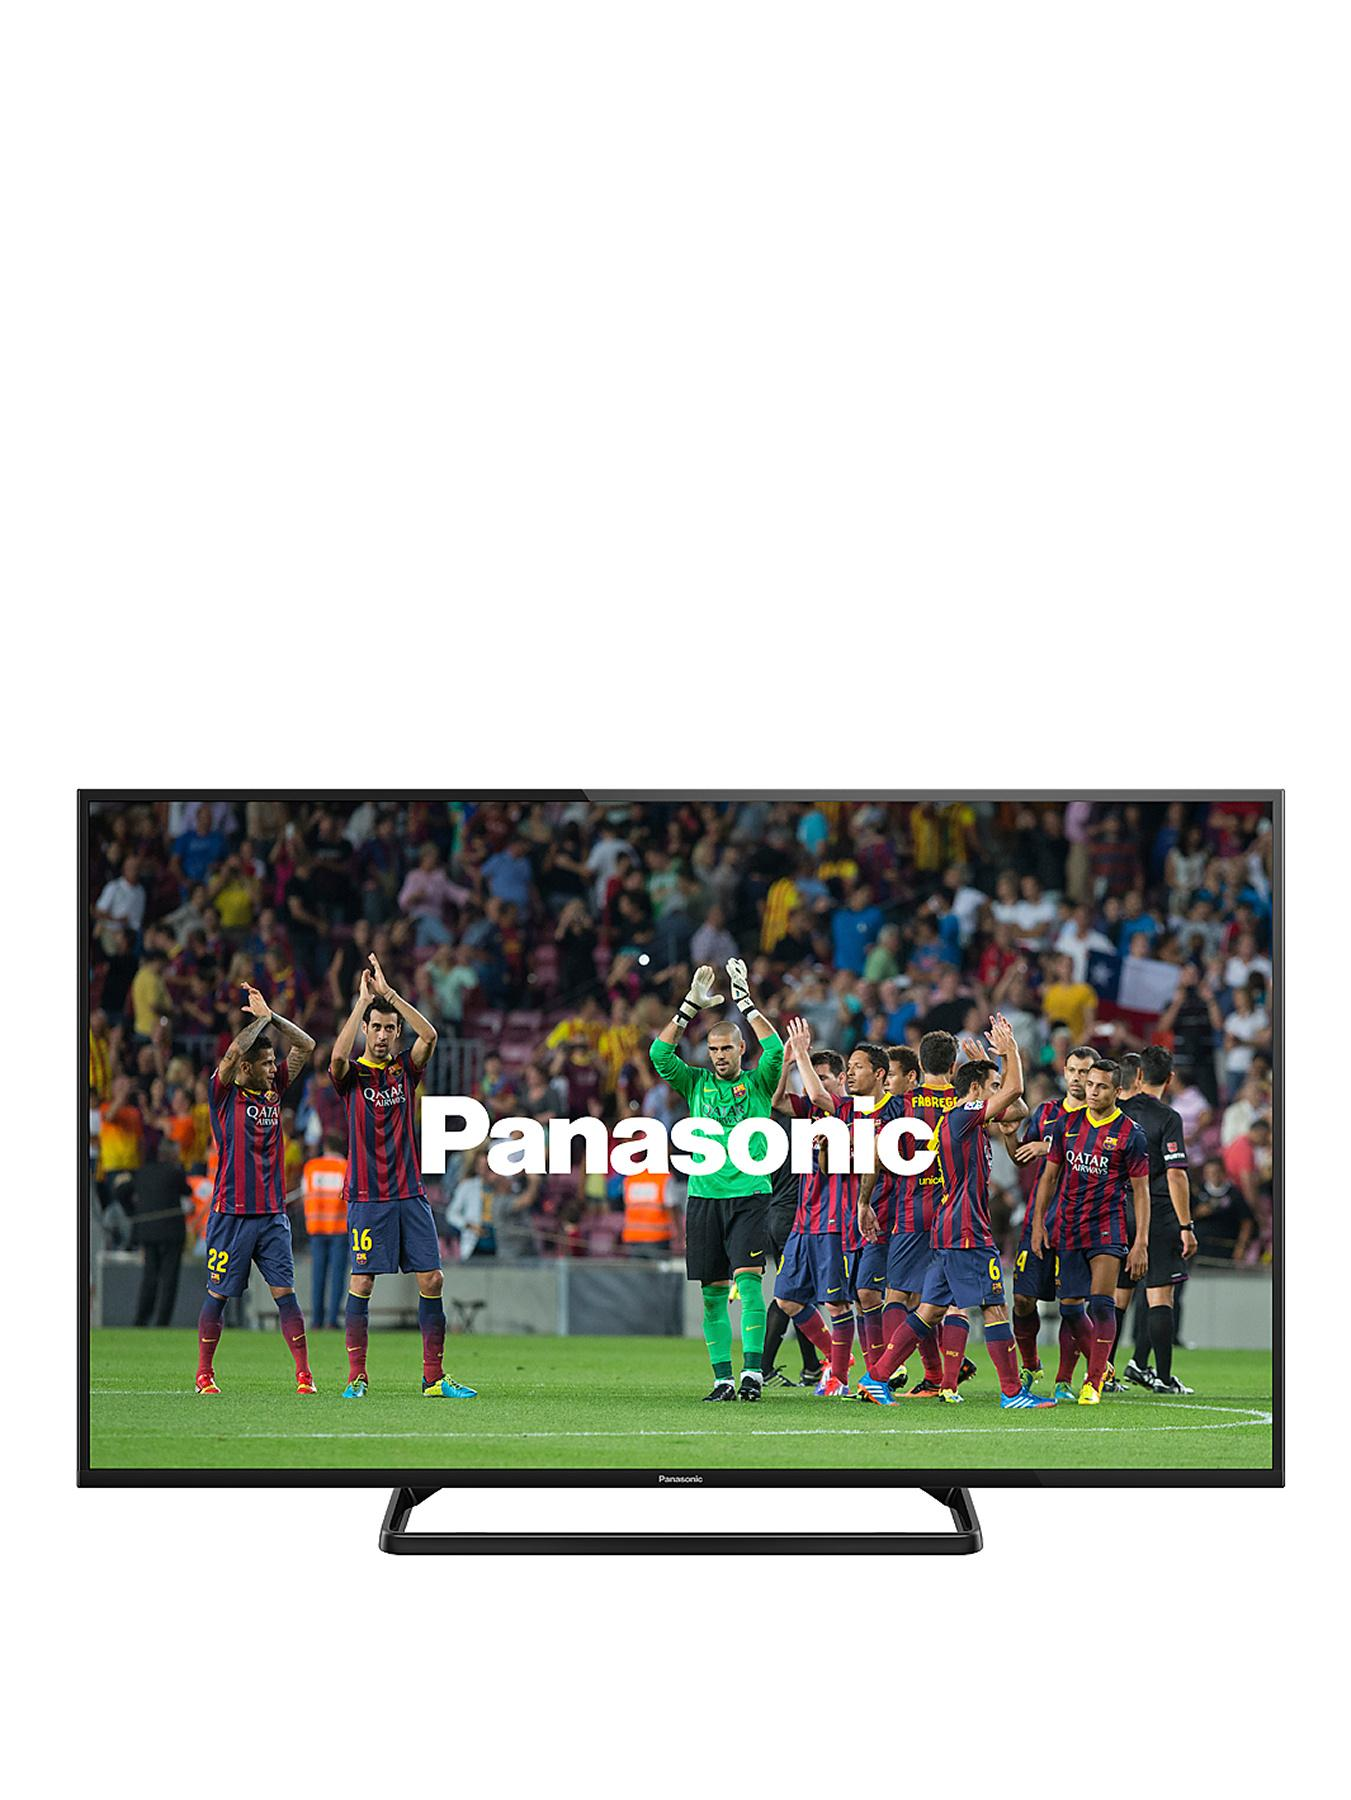 Panasonic TX-50A400B 50-inch Widescreen 1080p Full HD LED TV with Freeview